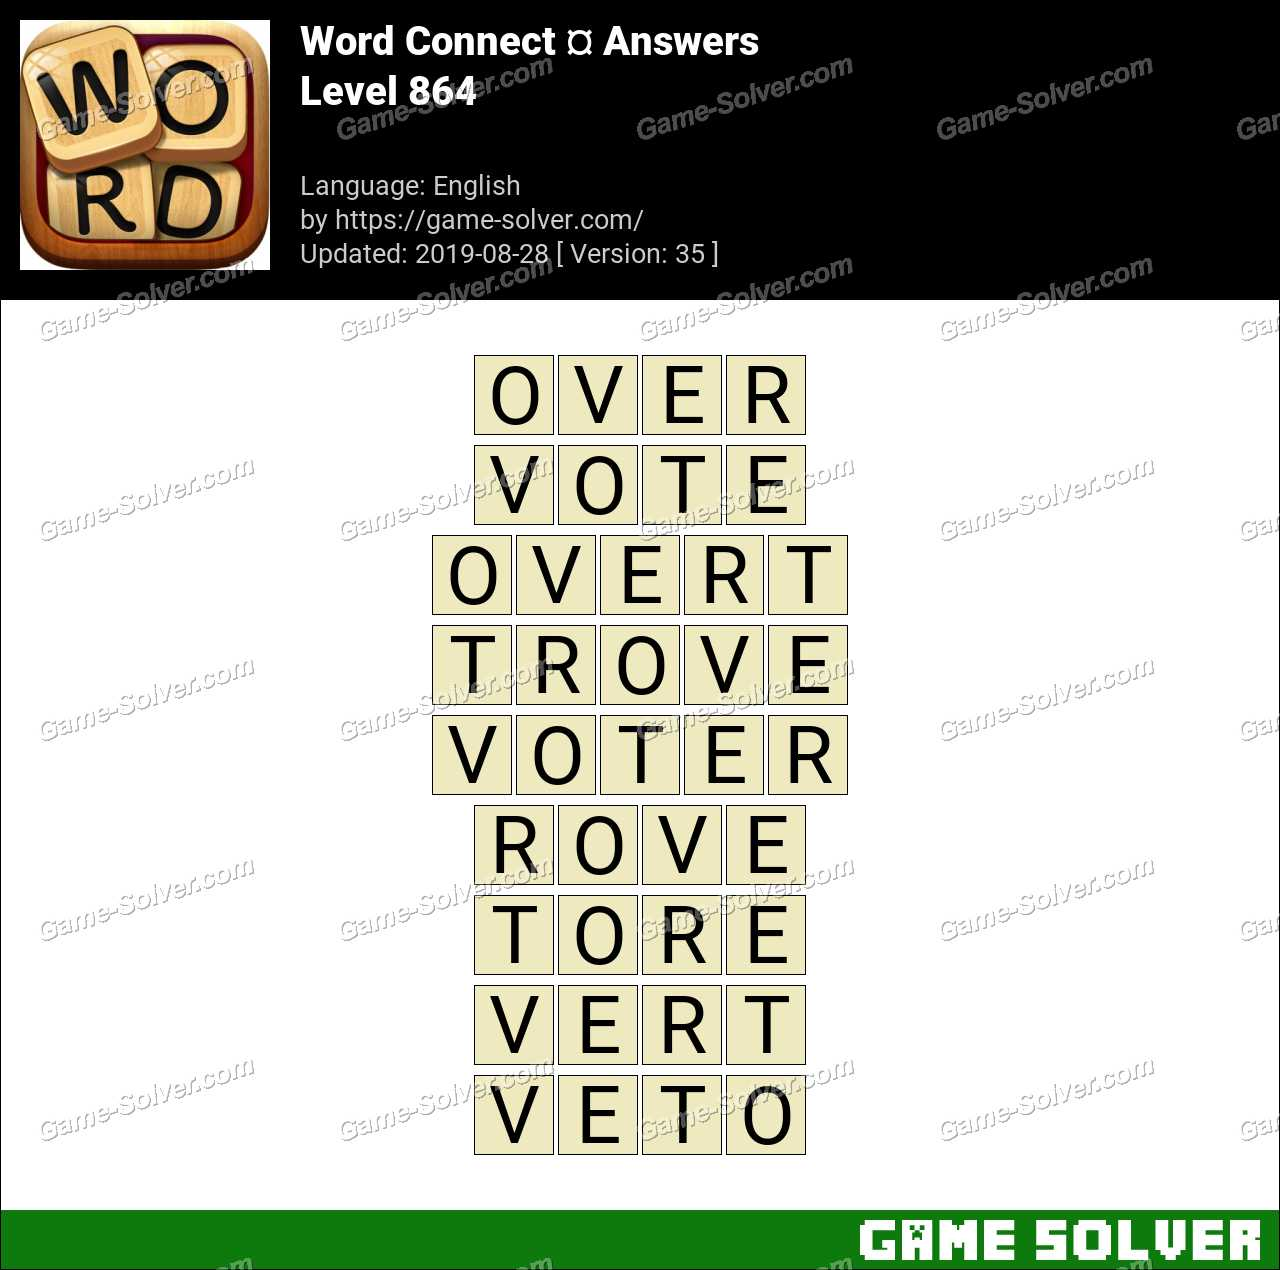 Word Connect Level 864 Answers